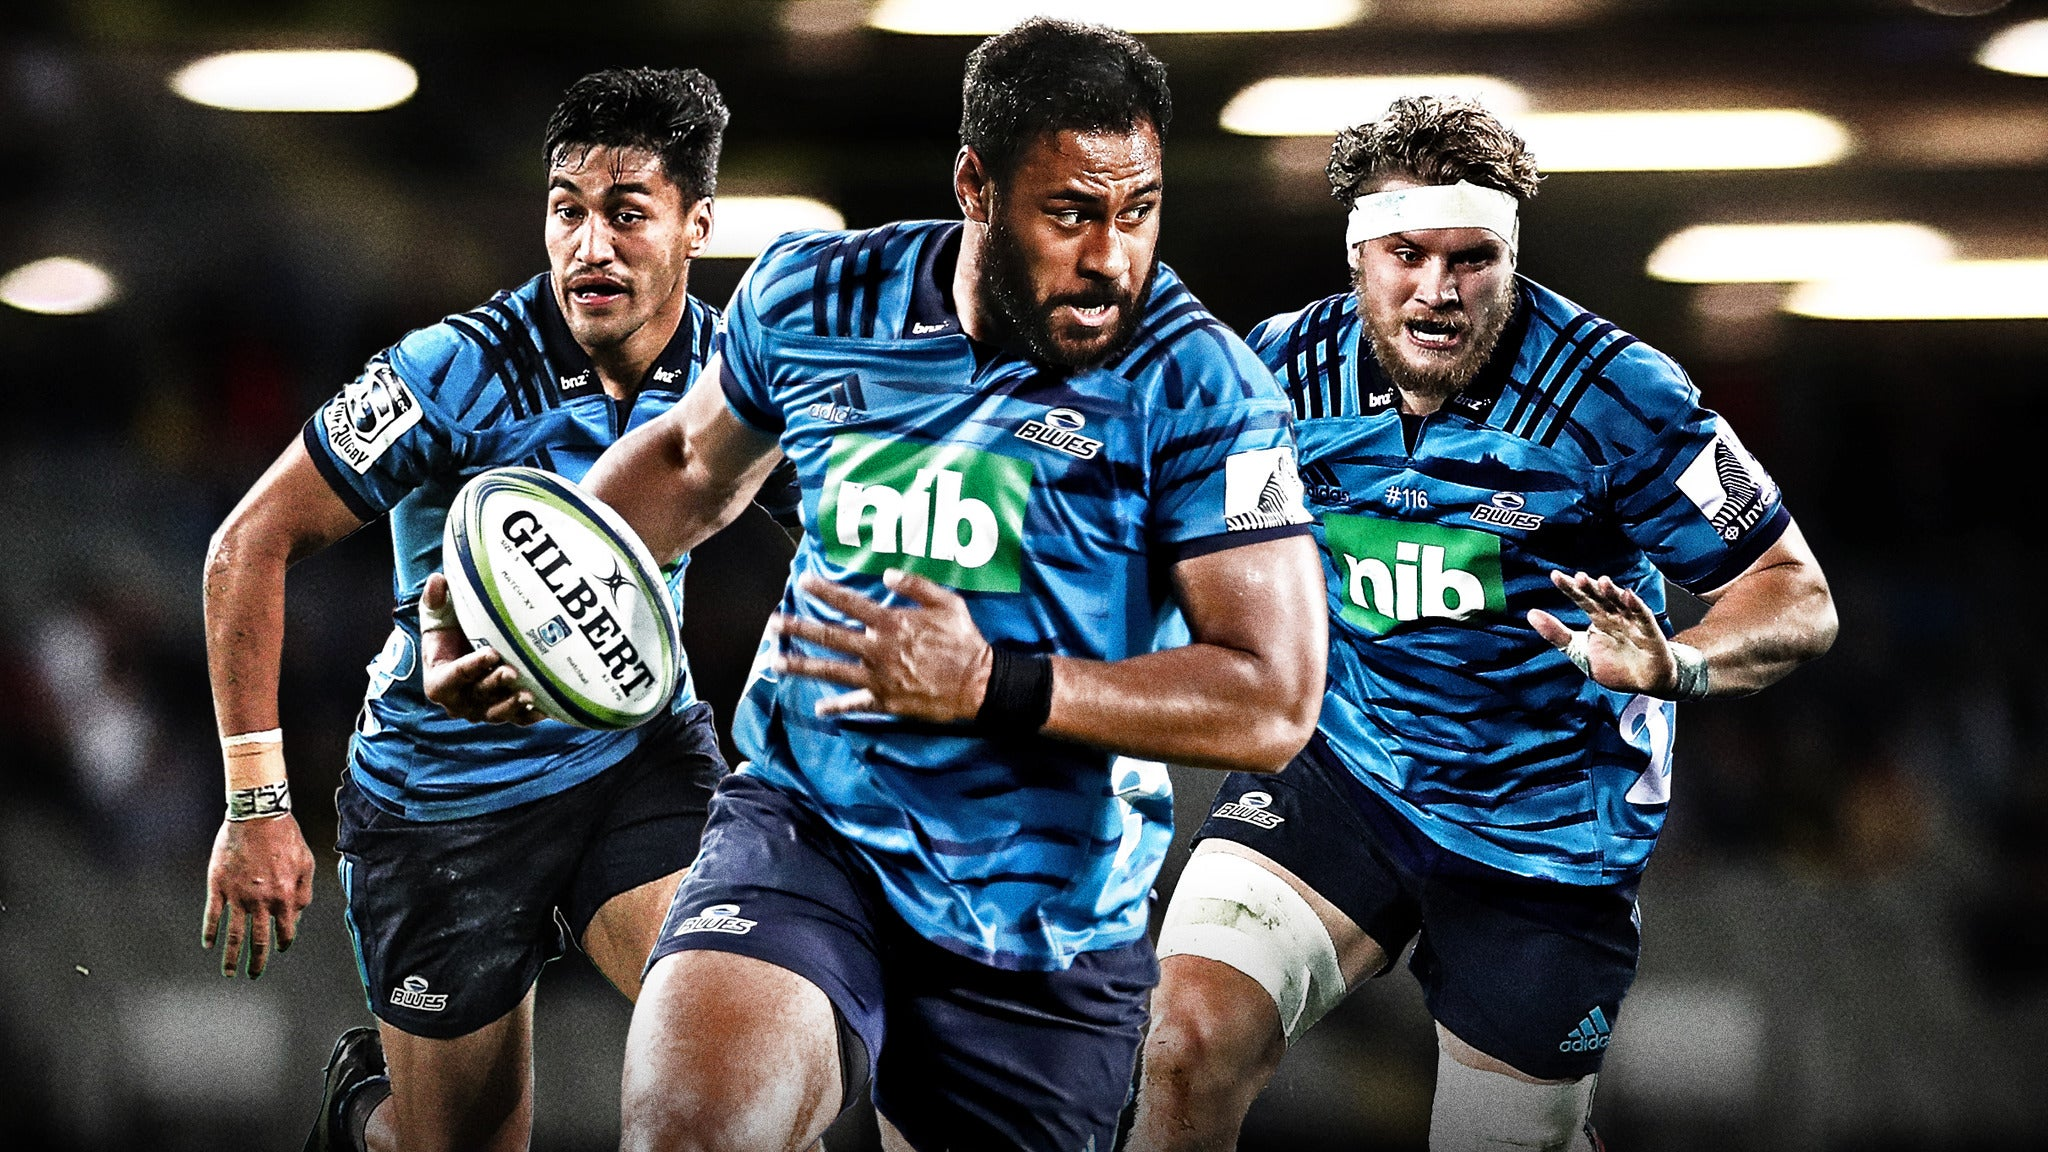 2019 Super Rugby: Blues v Stormers